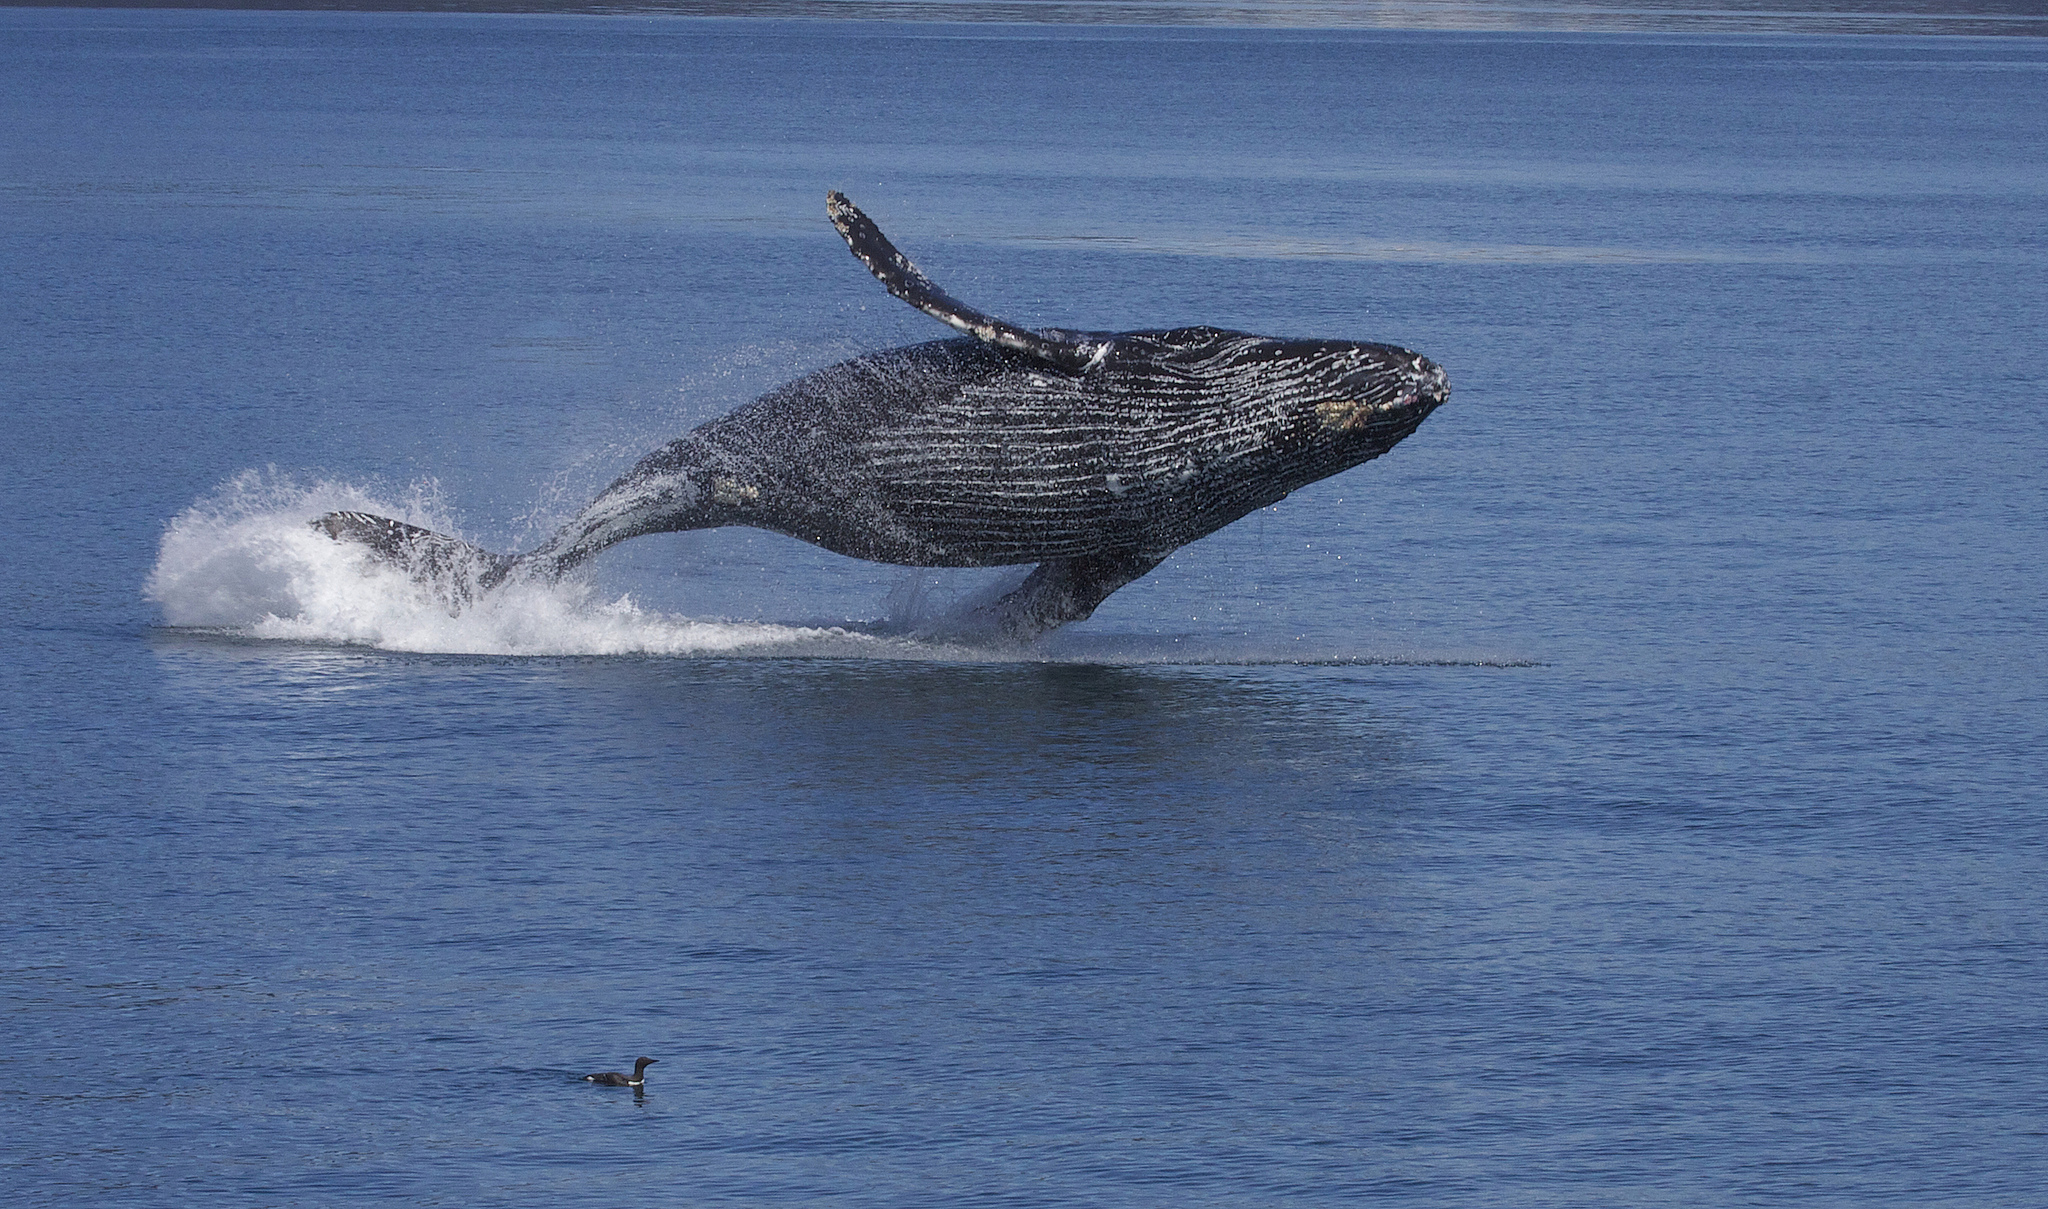 "Breaching Humpback Whale (Megaptera novaeangliae), Gregory ""Slobirdr"" Smith, June 12, 2013"